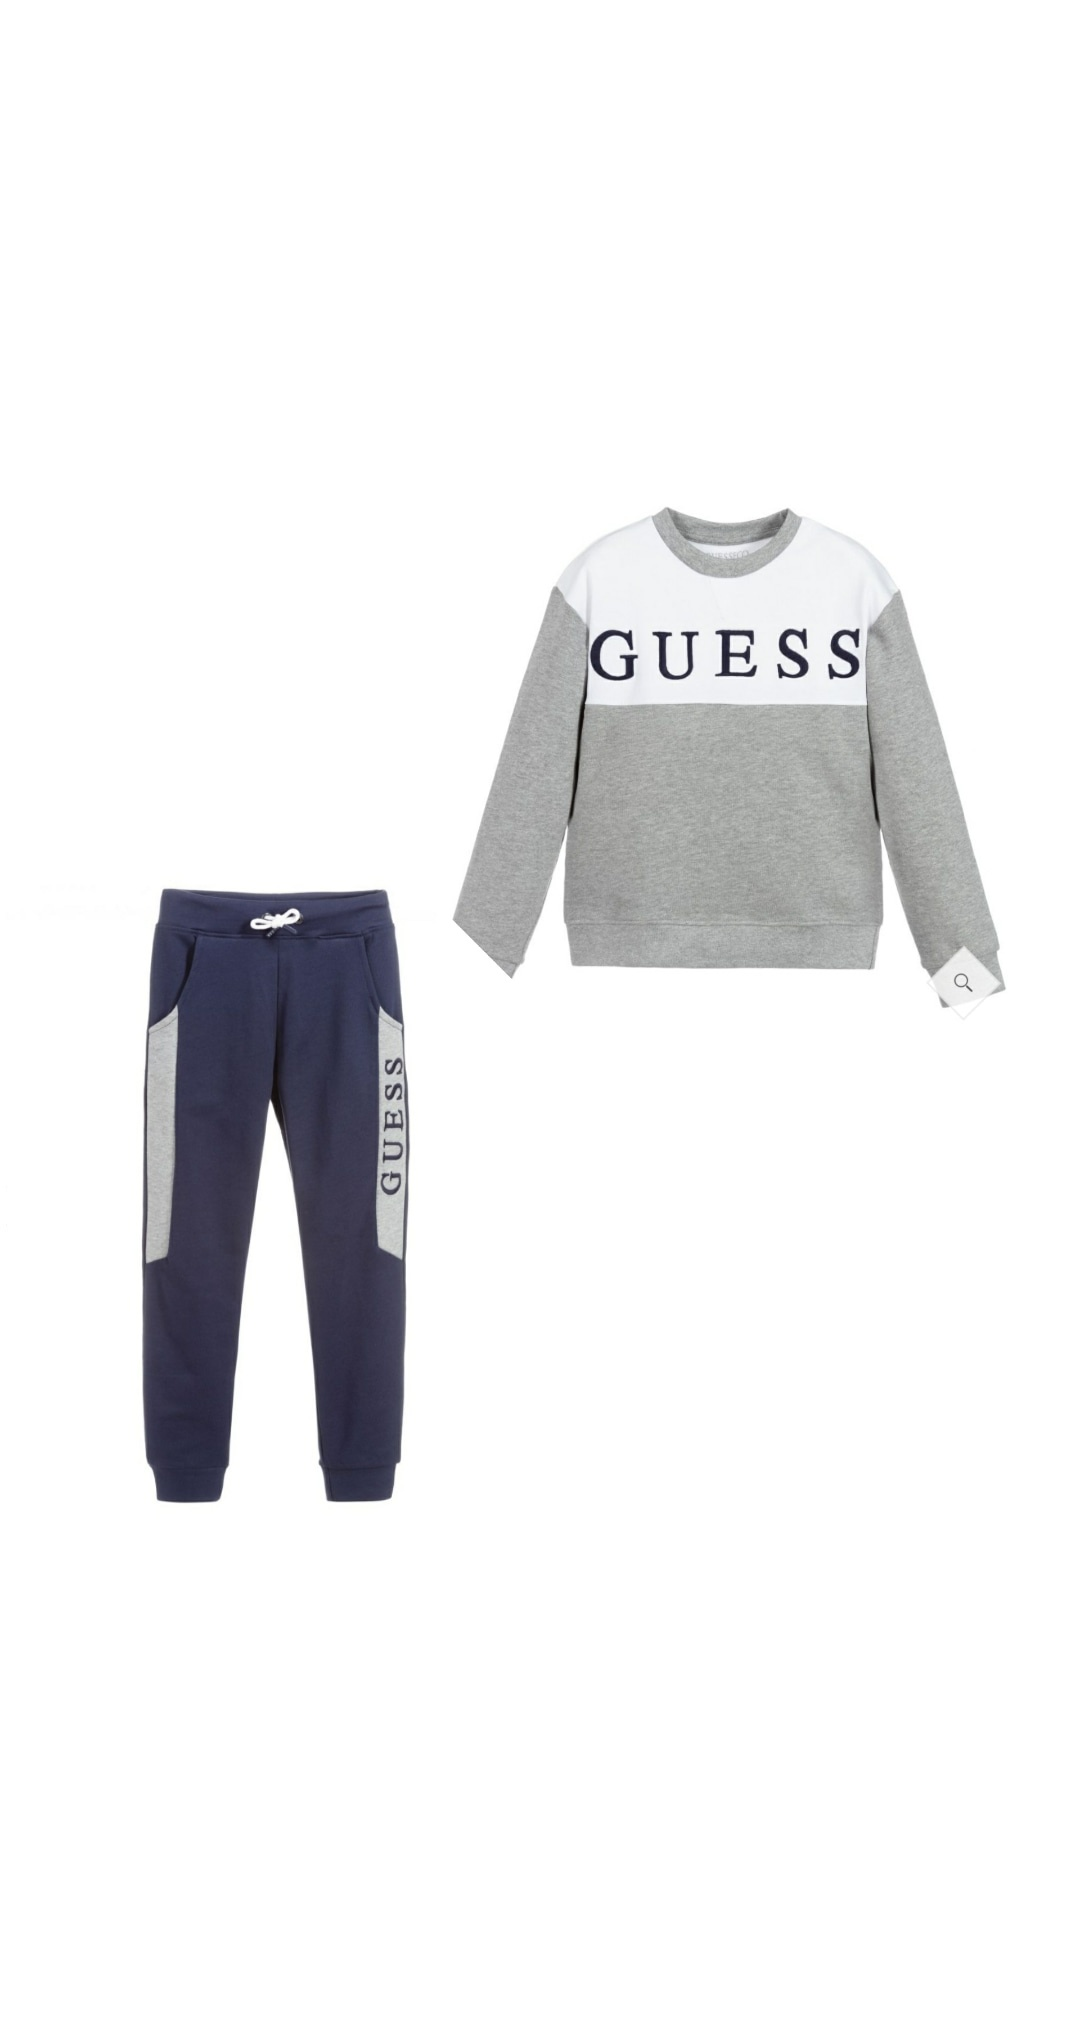 Guess Guess Grey & Navy Logo Tracksuit 7YEARS